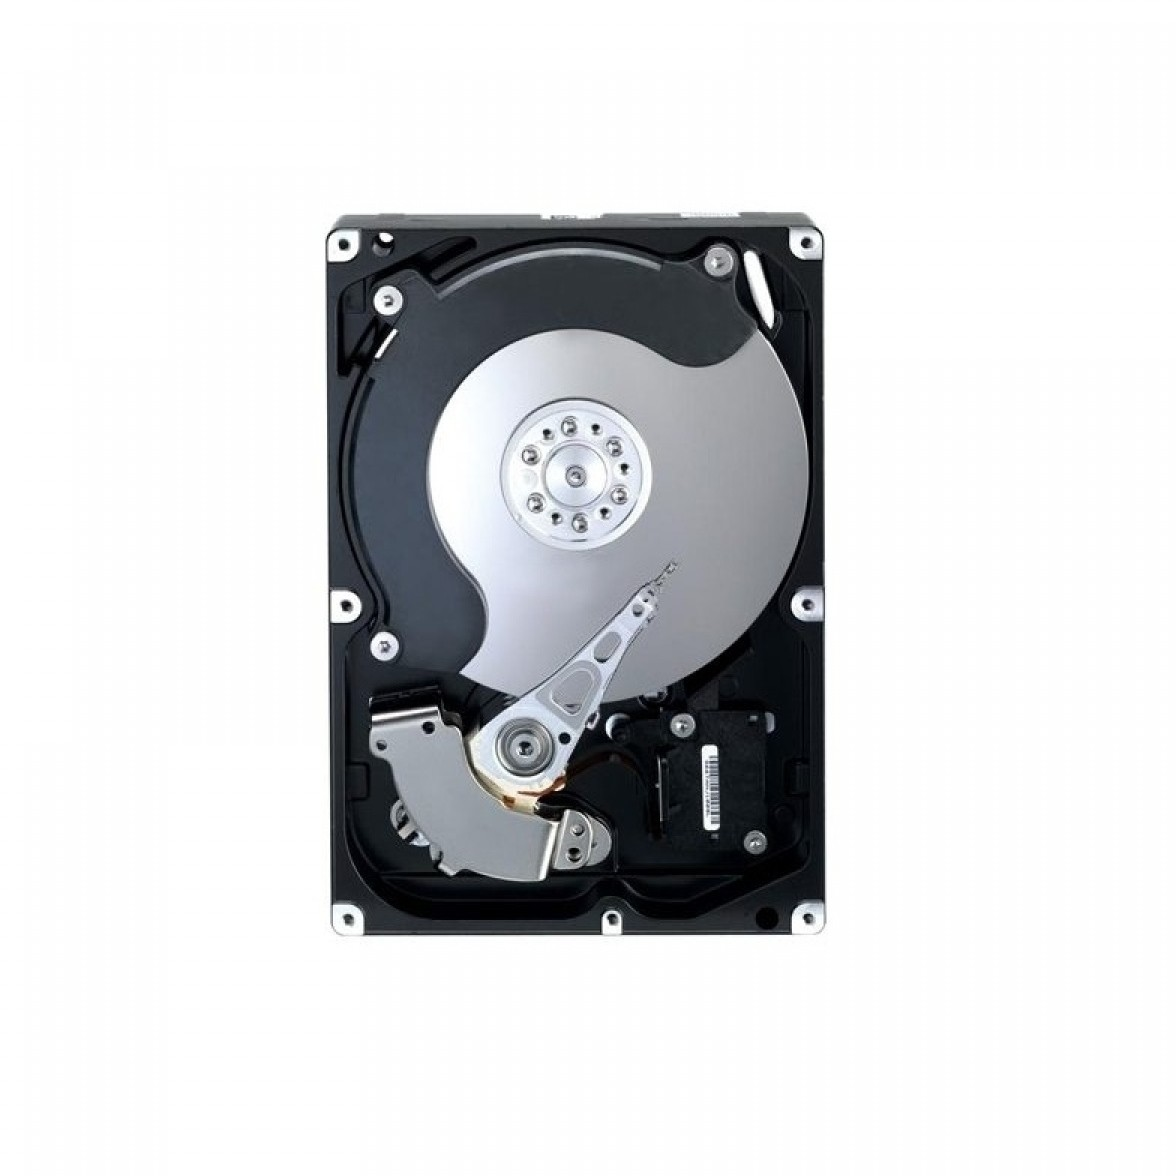 Dell Dell Hdd 300gb 10k Rpm Sas 6gbps 2.5in Hot-plug 3.5in Hyb Carr 13g cuskit